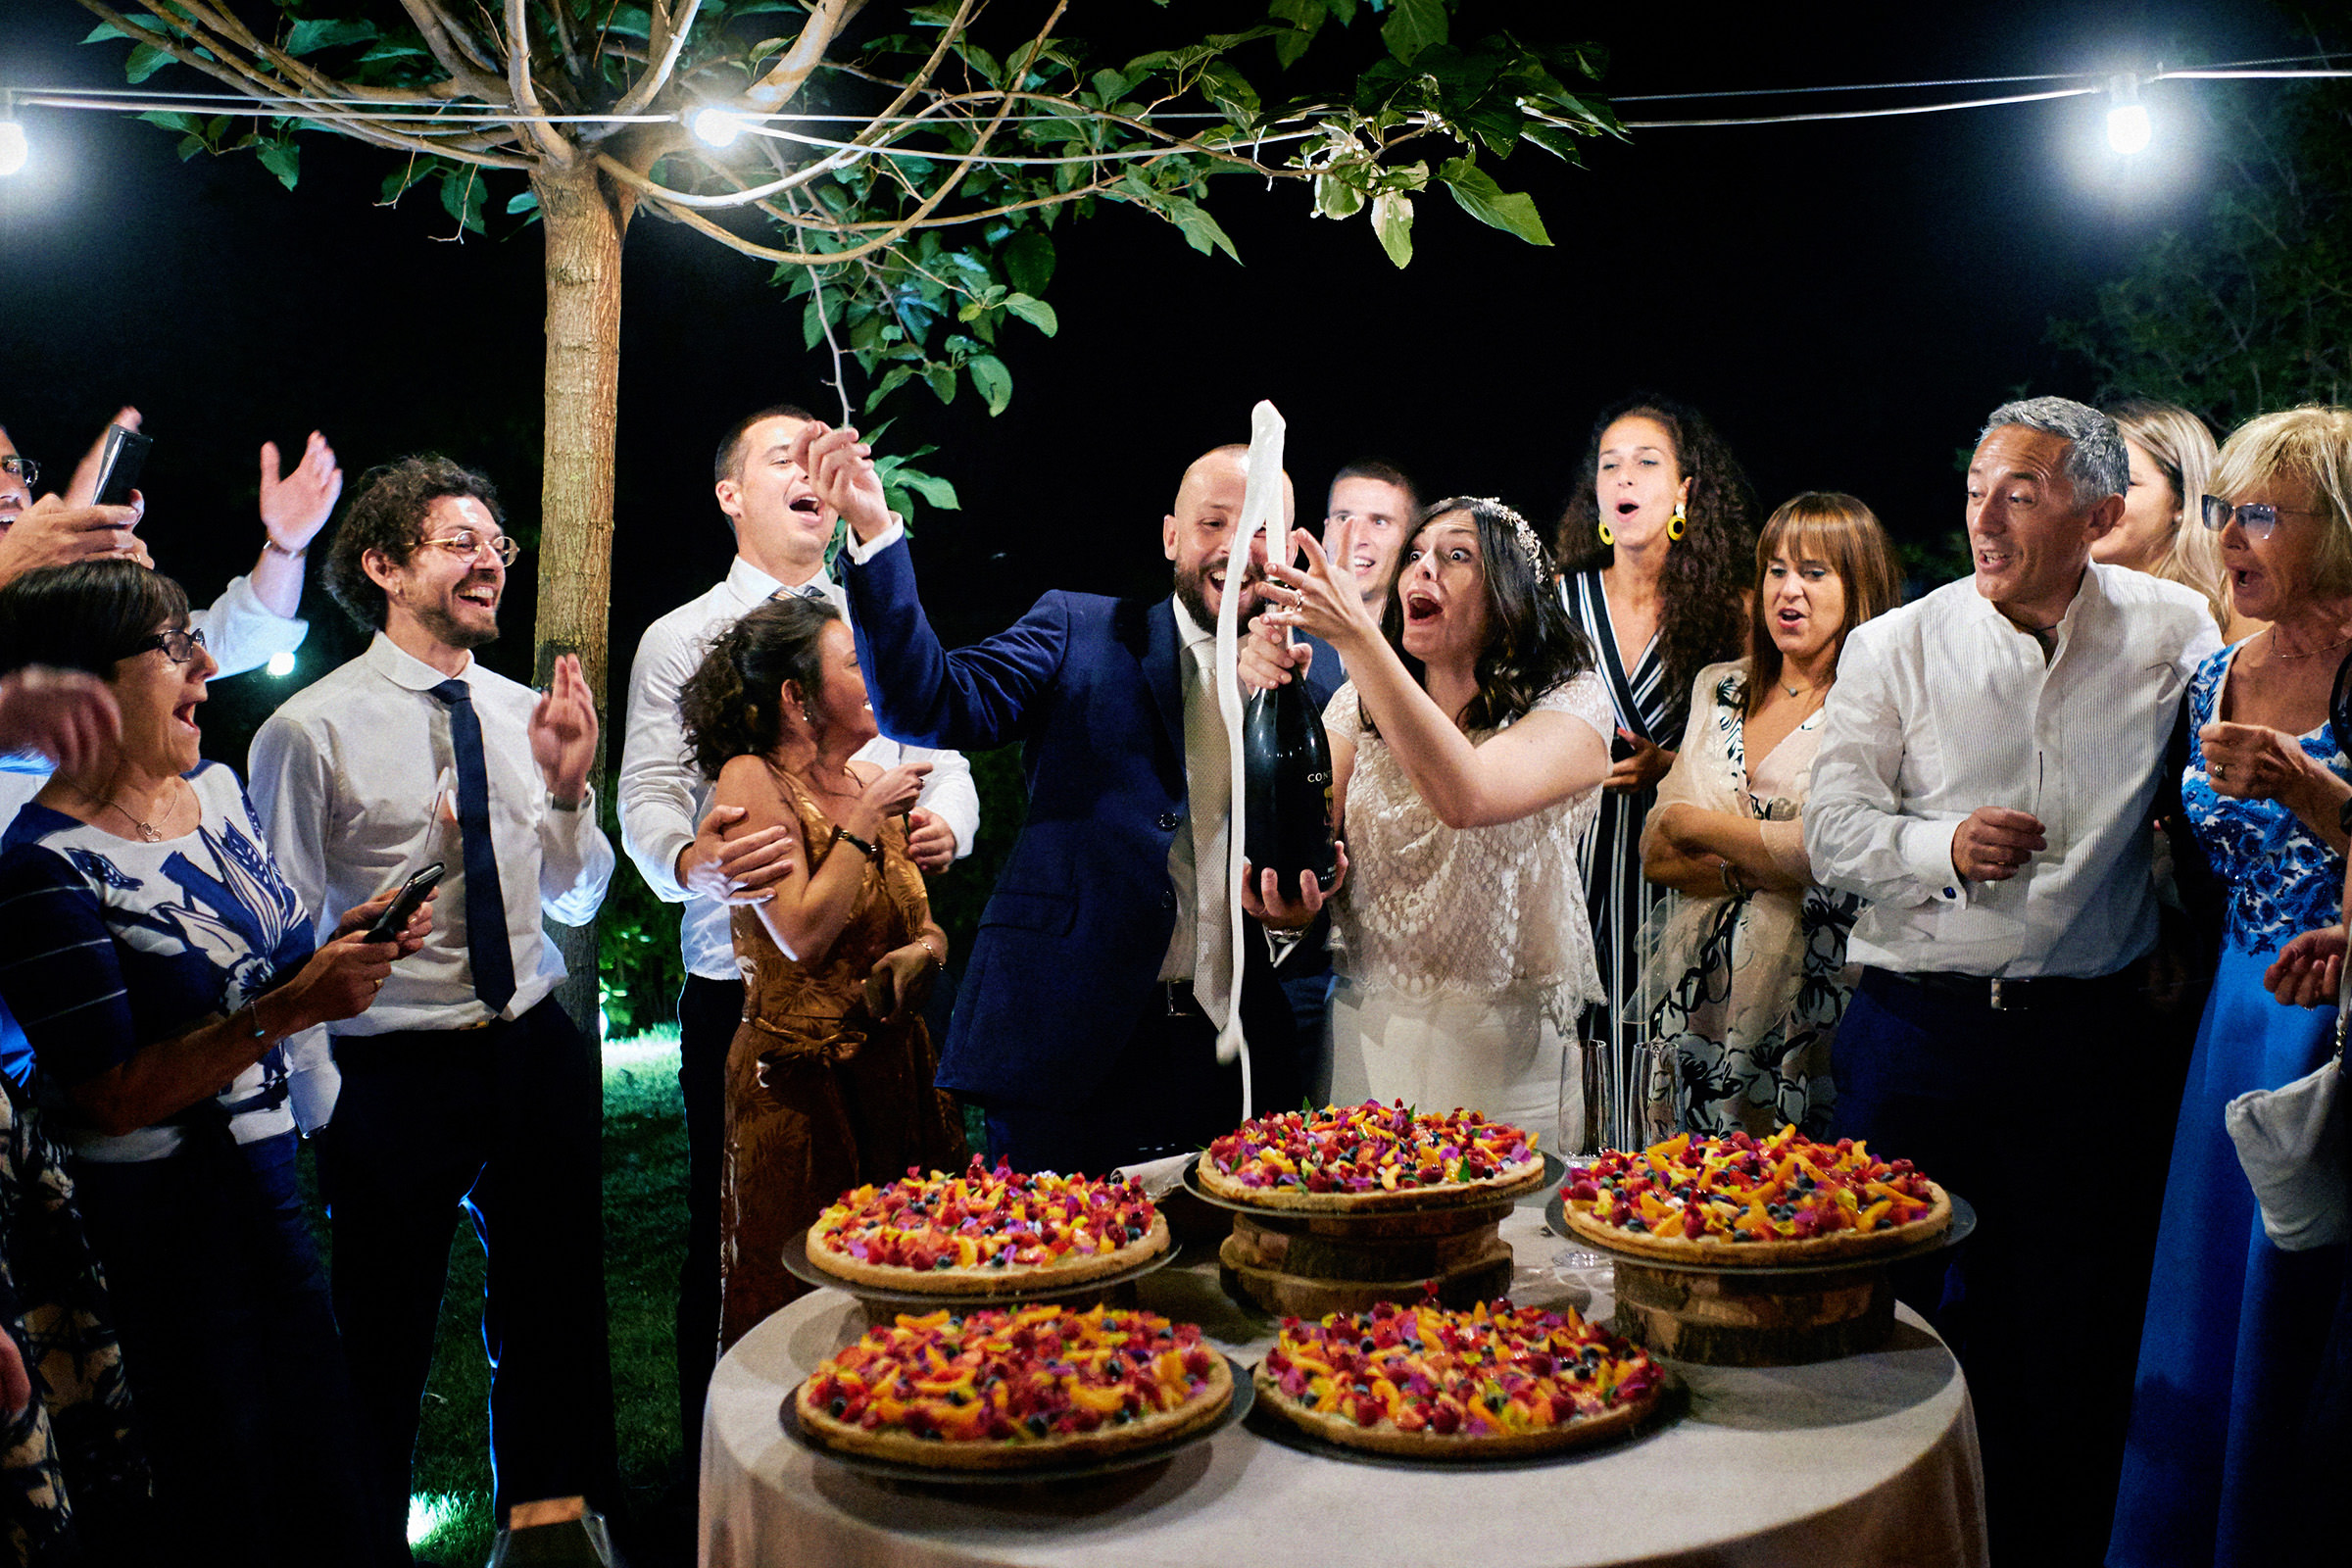 Celebration popping the bubbly amidst happy guests - photo by Andrea Bagnasco Fotografie